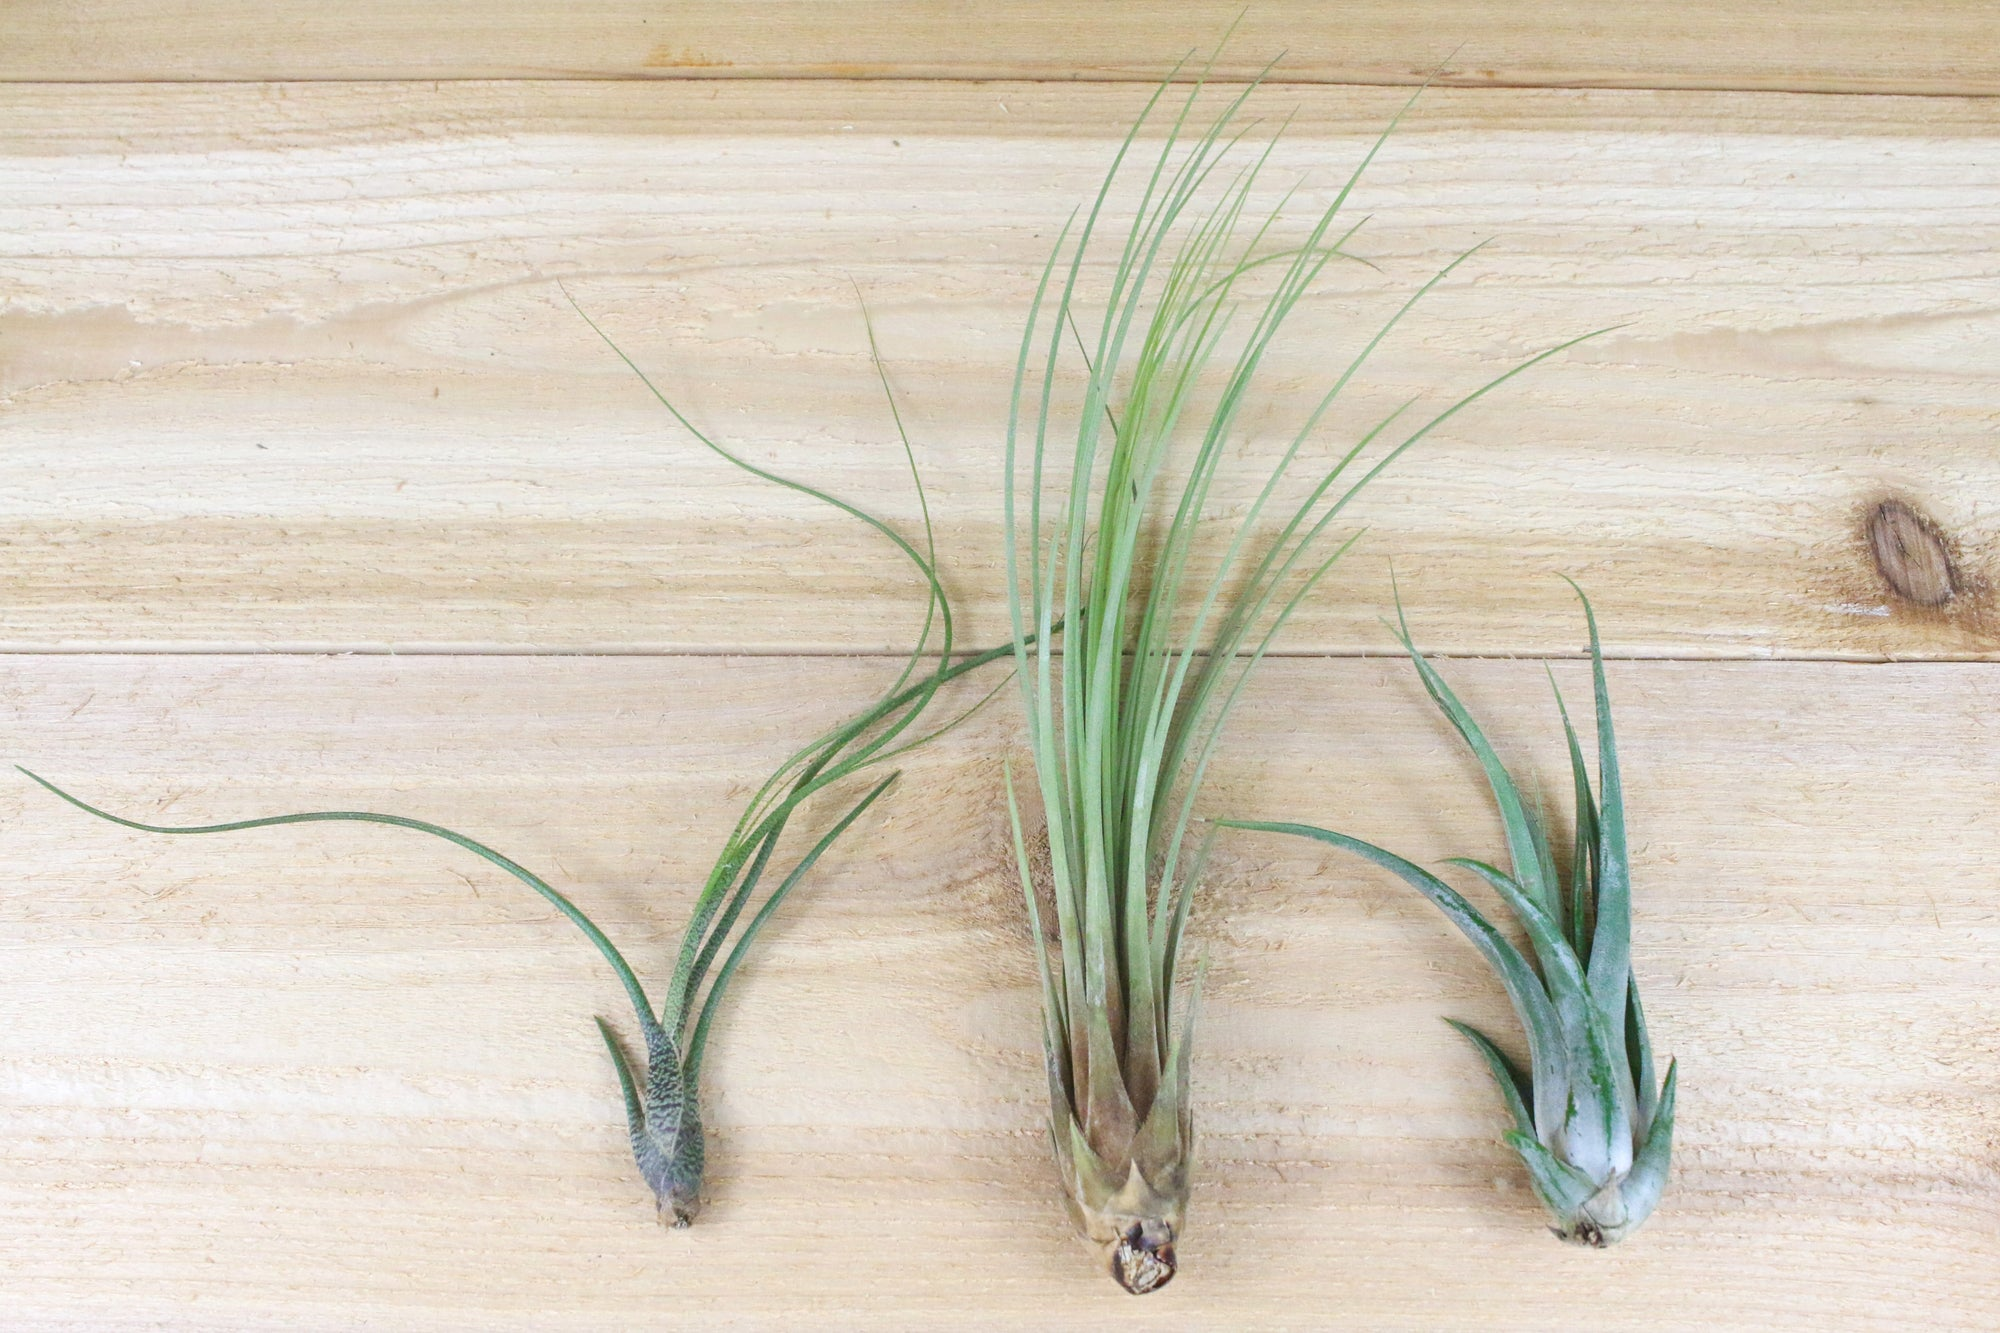 [6 Pack] Tall Collection of Tillandsia Air Plants from AirPlantShop.com